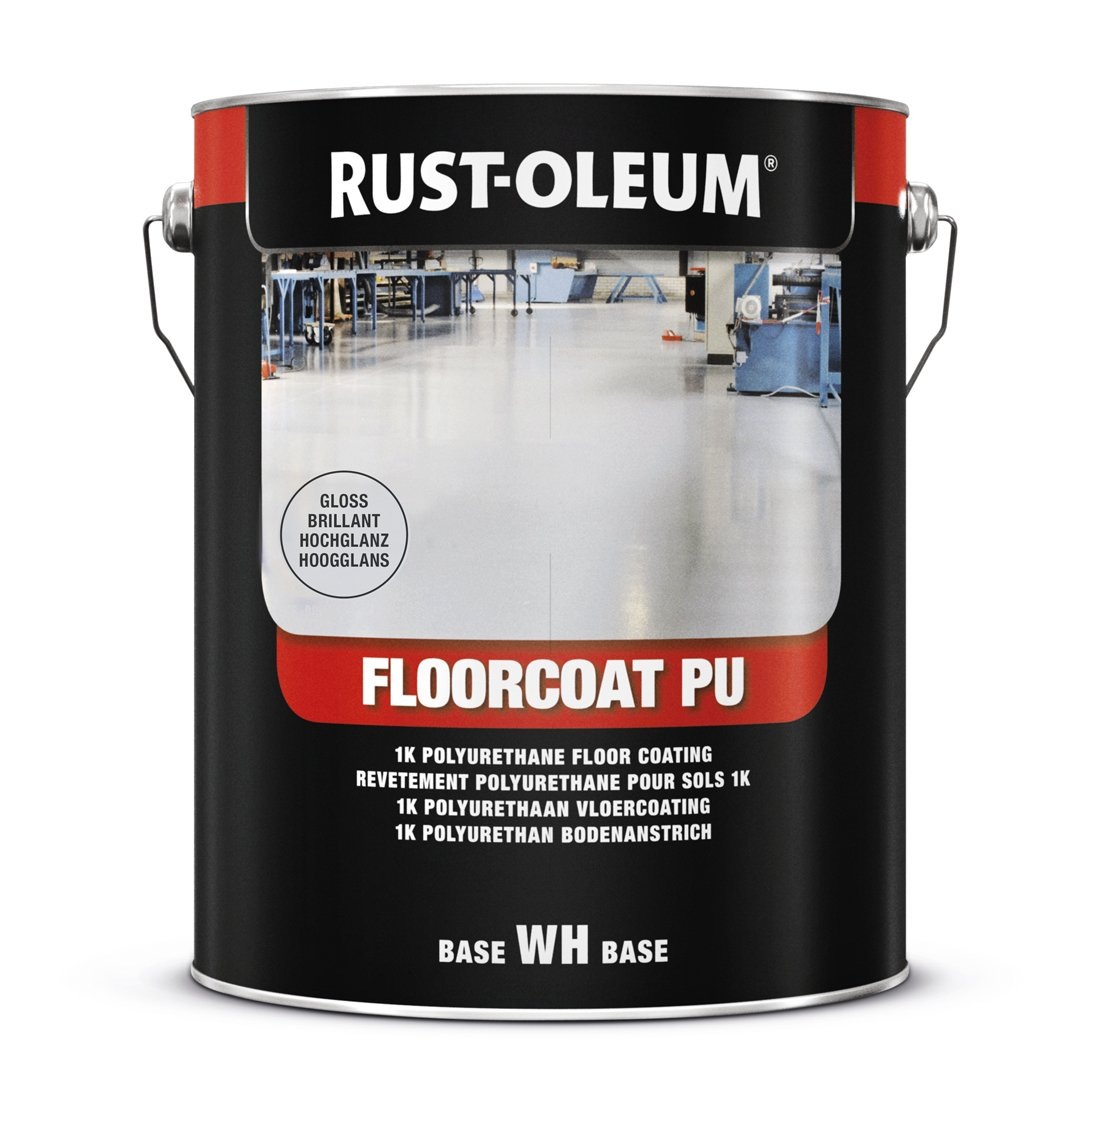 RUST-OLEUM 7268.2.5 Floor coat, Pu, Durable Single Pack Paint, English red